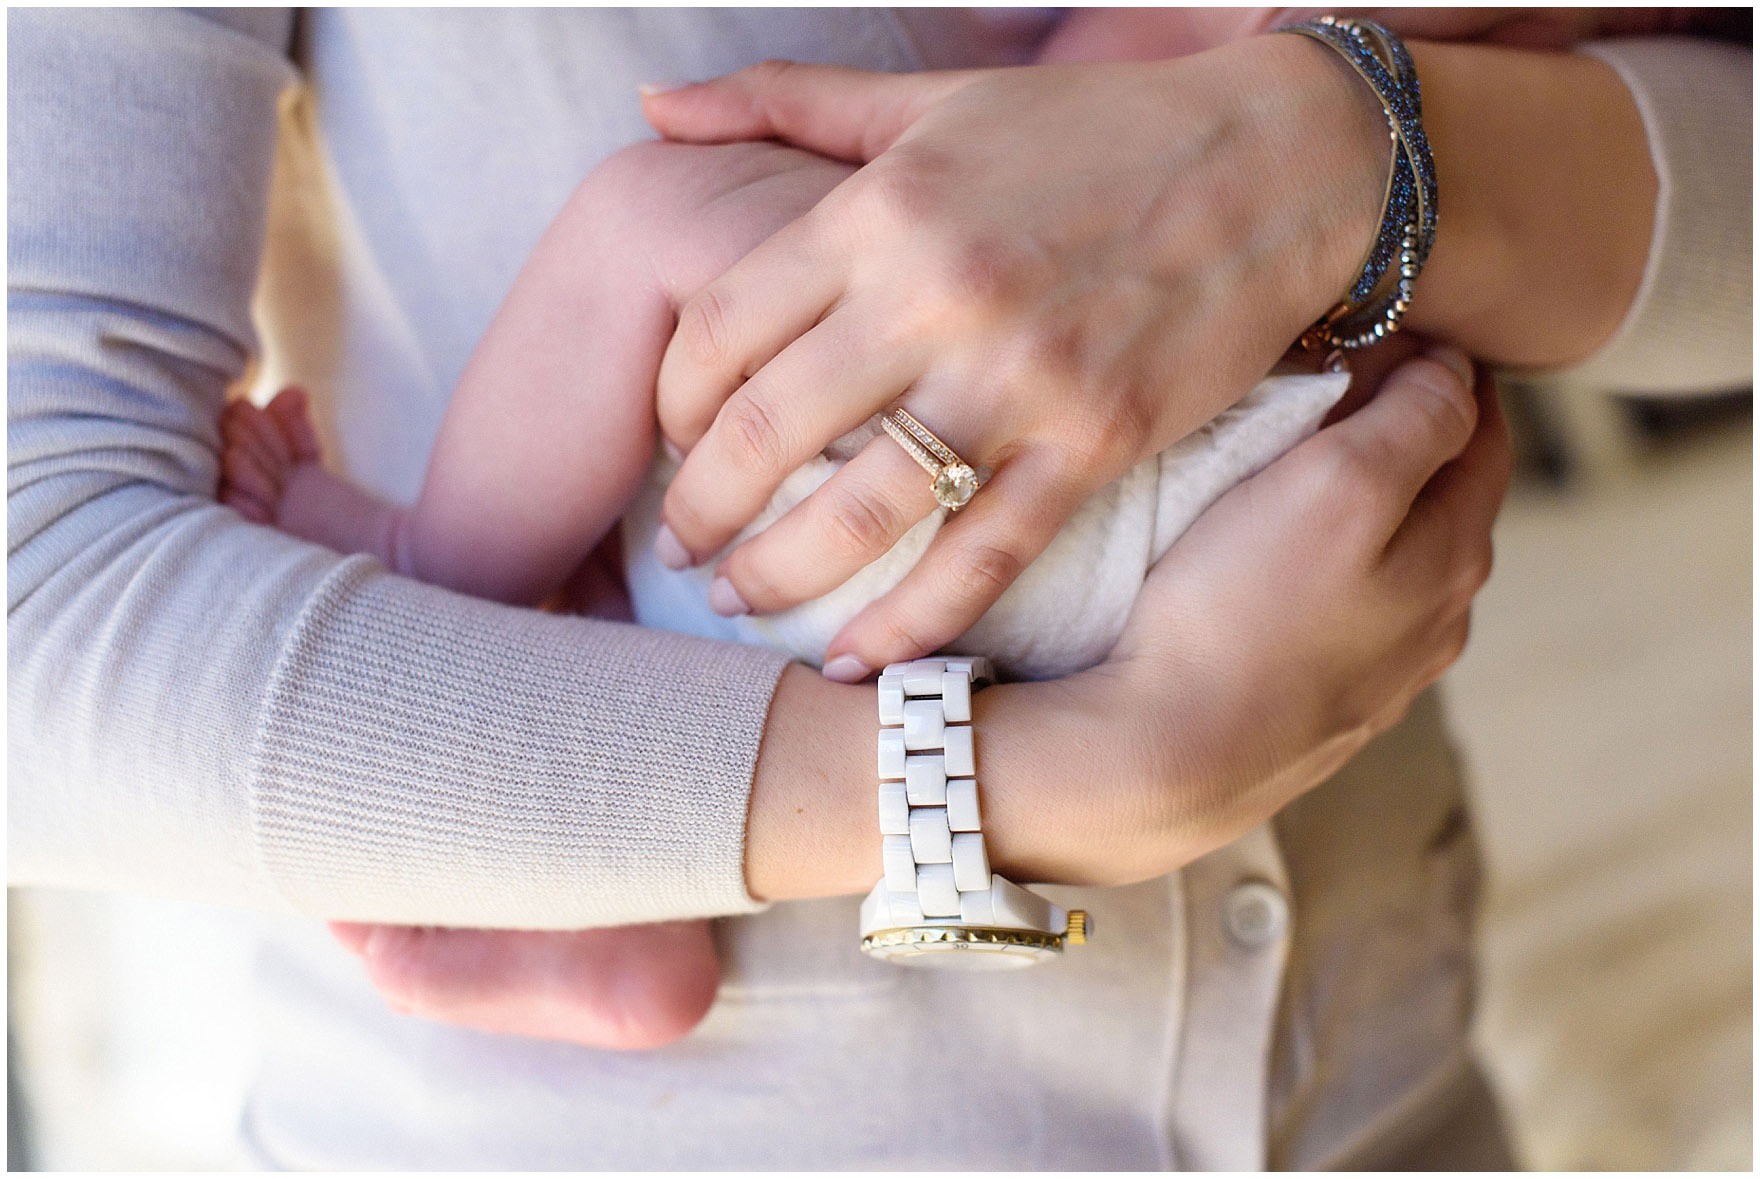 Close up of a mother's hands, with engagement ring and wedding band, holding her son during a Chicago newborn baby photography session.